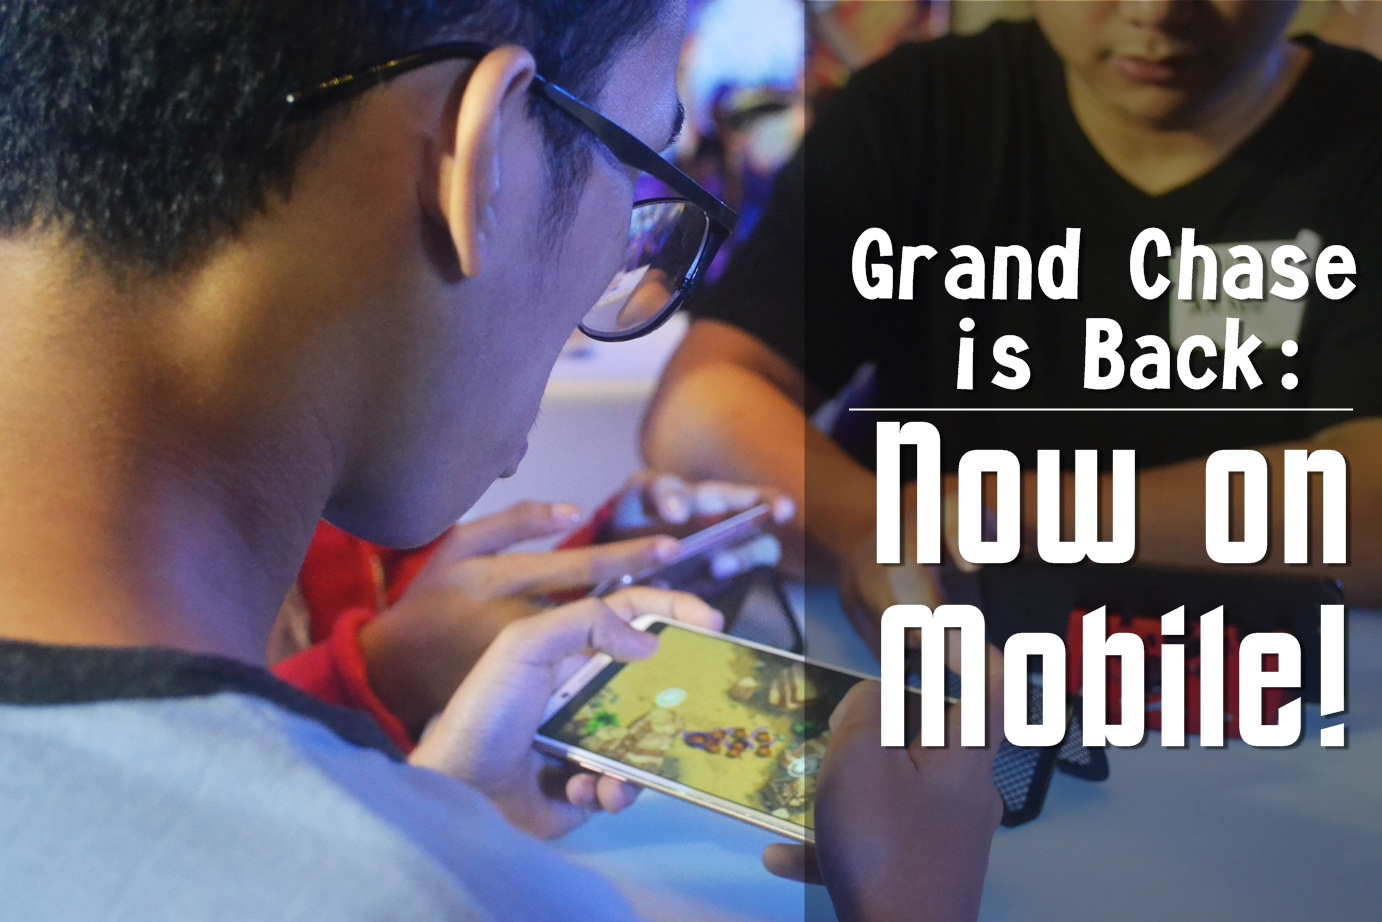 Grand Chase is Back: Now on Mobile! - Ranneveryday